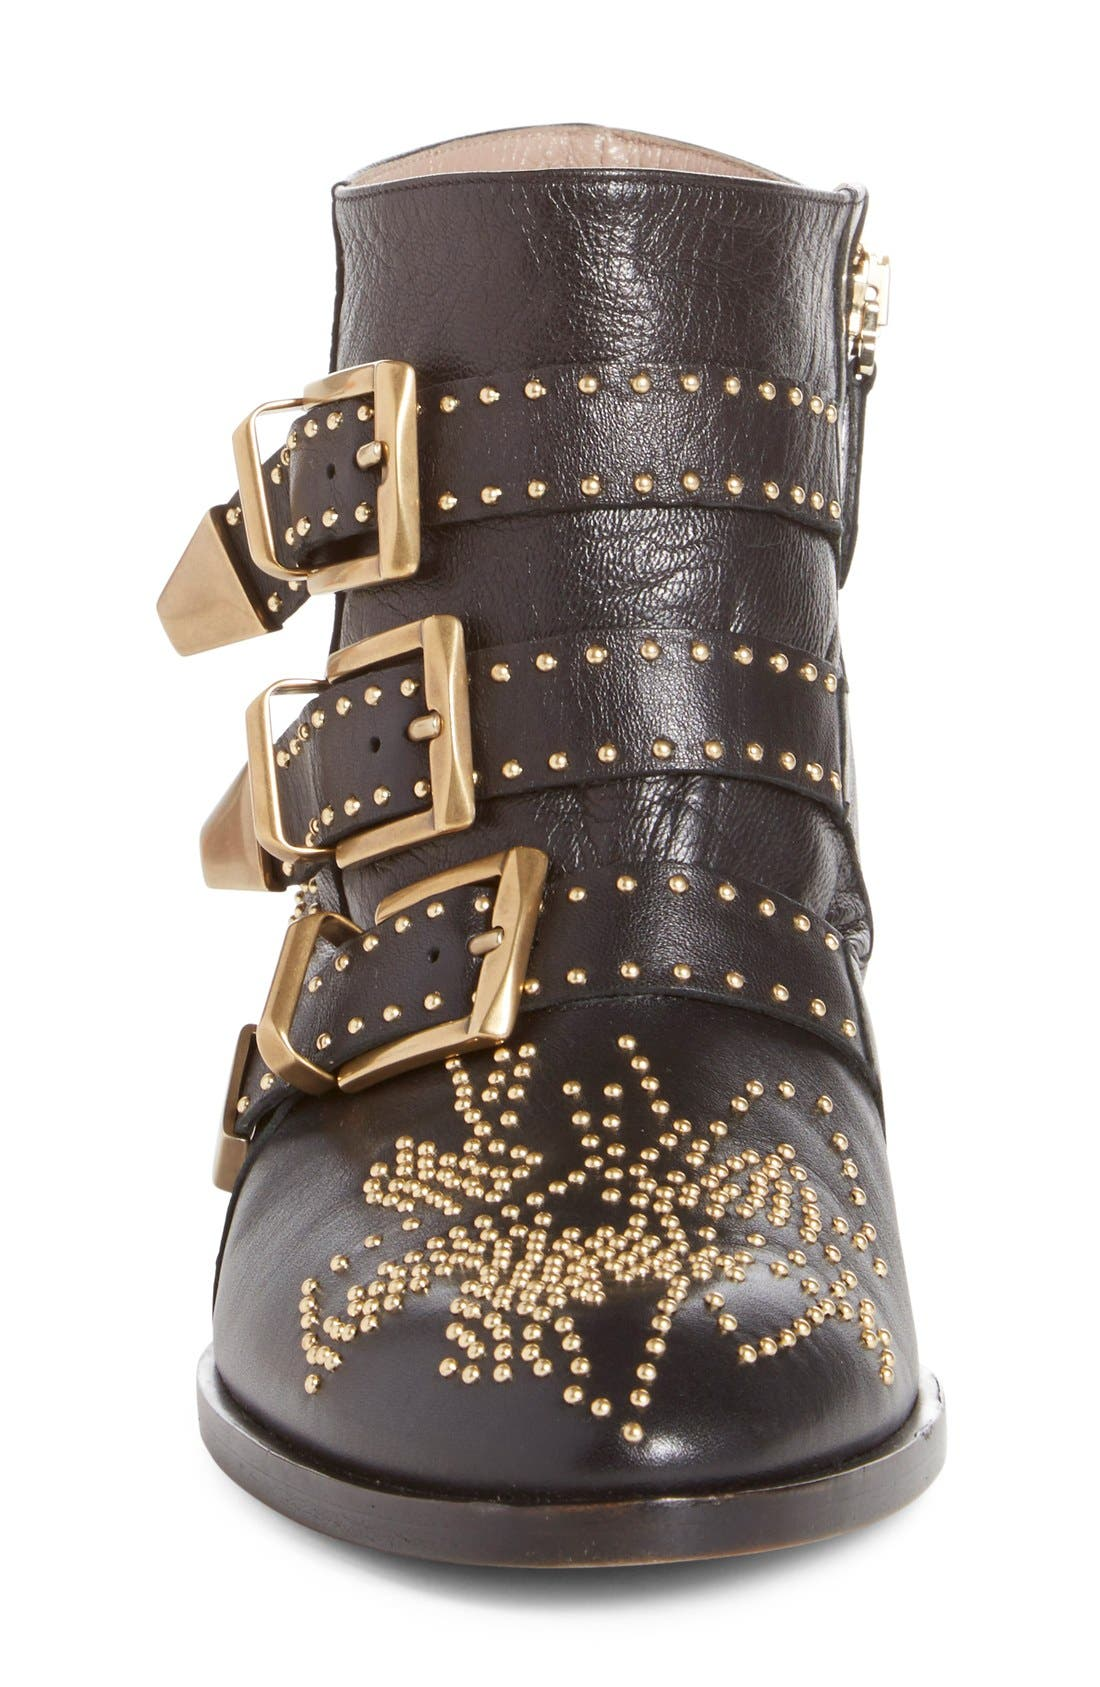 CHLOÉ, Susanna Stud Buckle Bootie, Alternate thumbnail 8, color, BLACK GOLD LEATHER